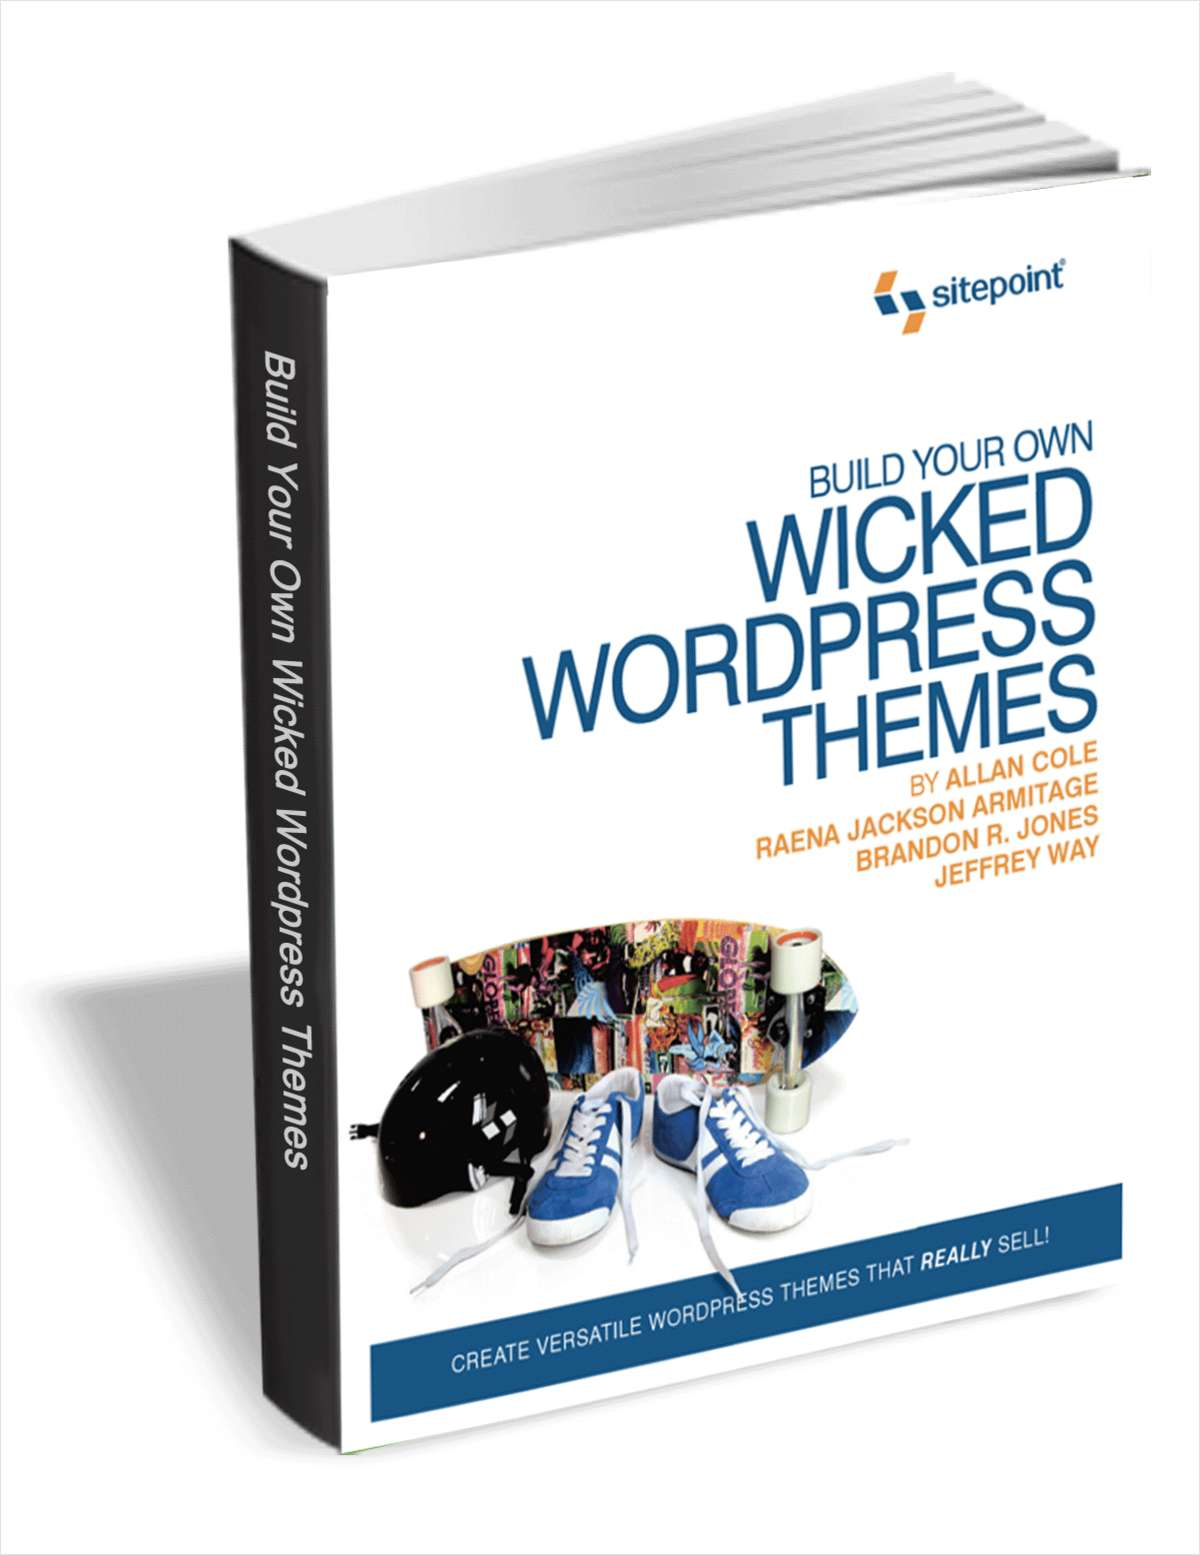 Build Your Own Wicked WordPress Themes  (Valued at $30) FREE!